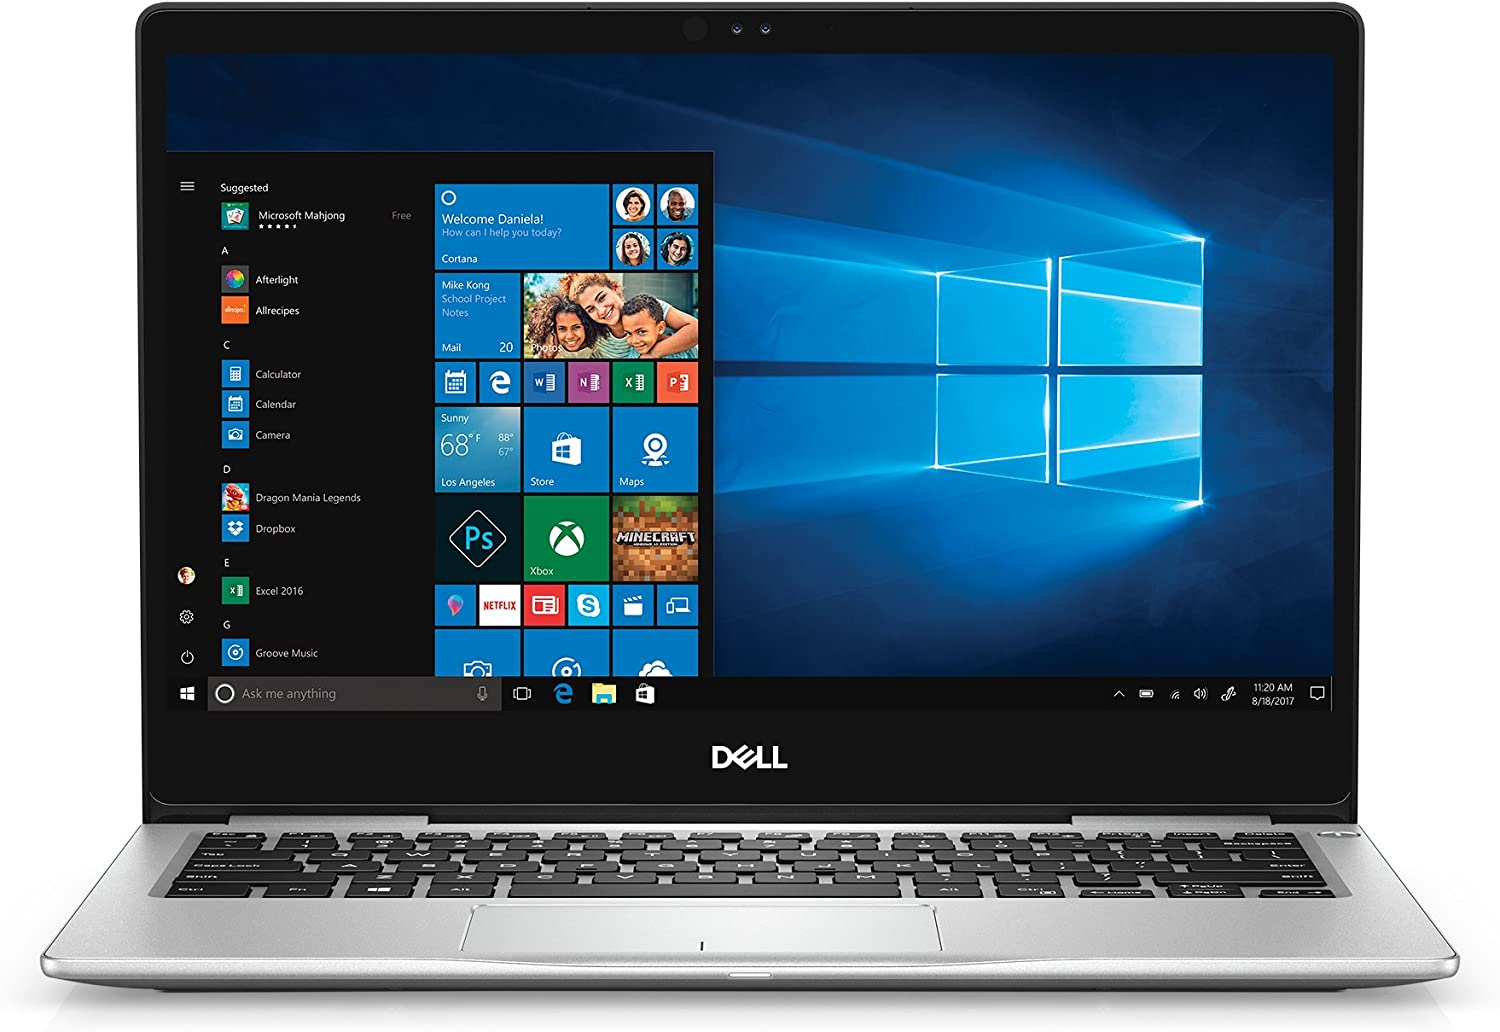 Amazon Com Dell Inspiron 13 7000 7370 Laptop 13 3 Touchscreen Ips Fhd 1920x1080 8th Gen Intel Quad Core I5 8250u 256gb Ssd 8gb Ddr4 Backlit Keyboard Windows 10 Computers Accessories